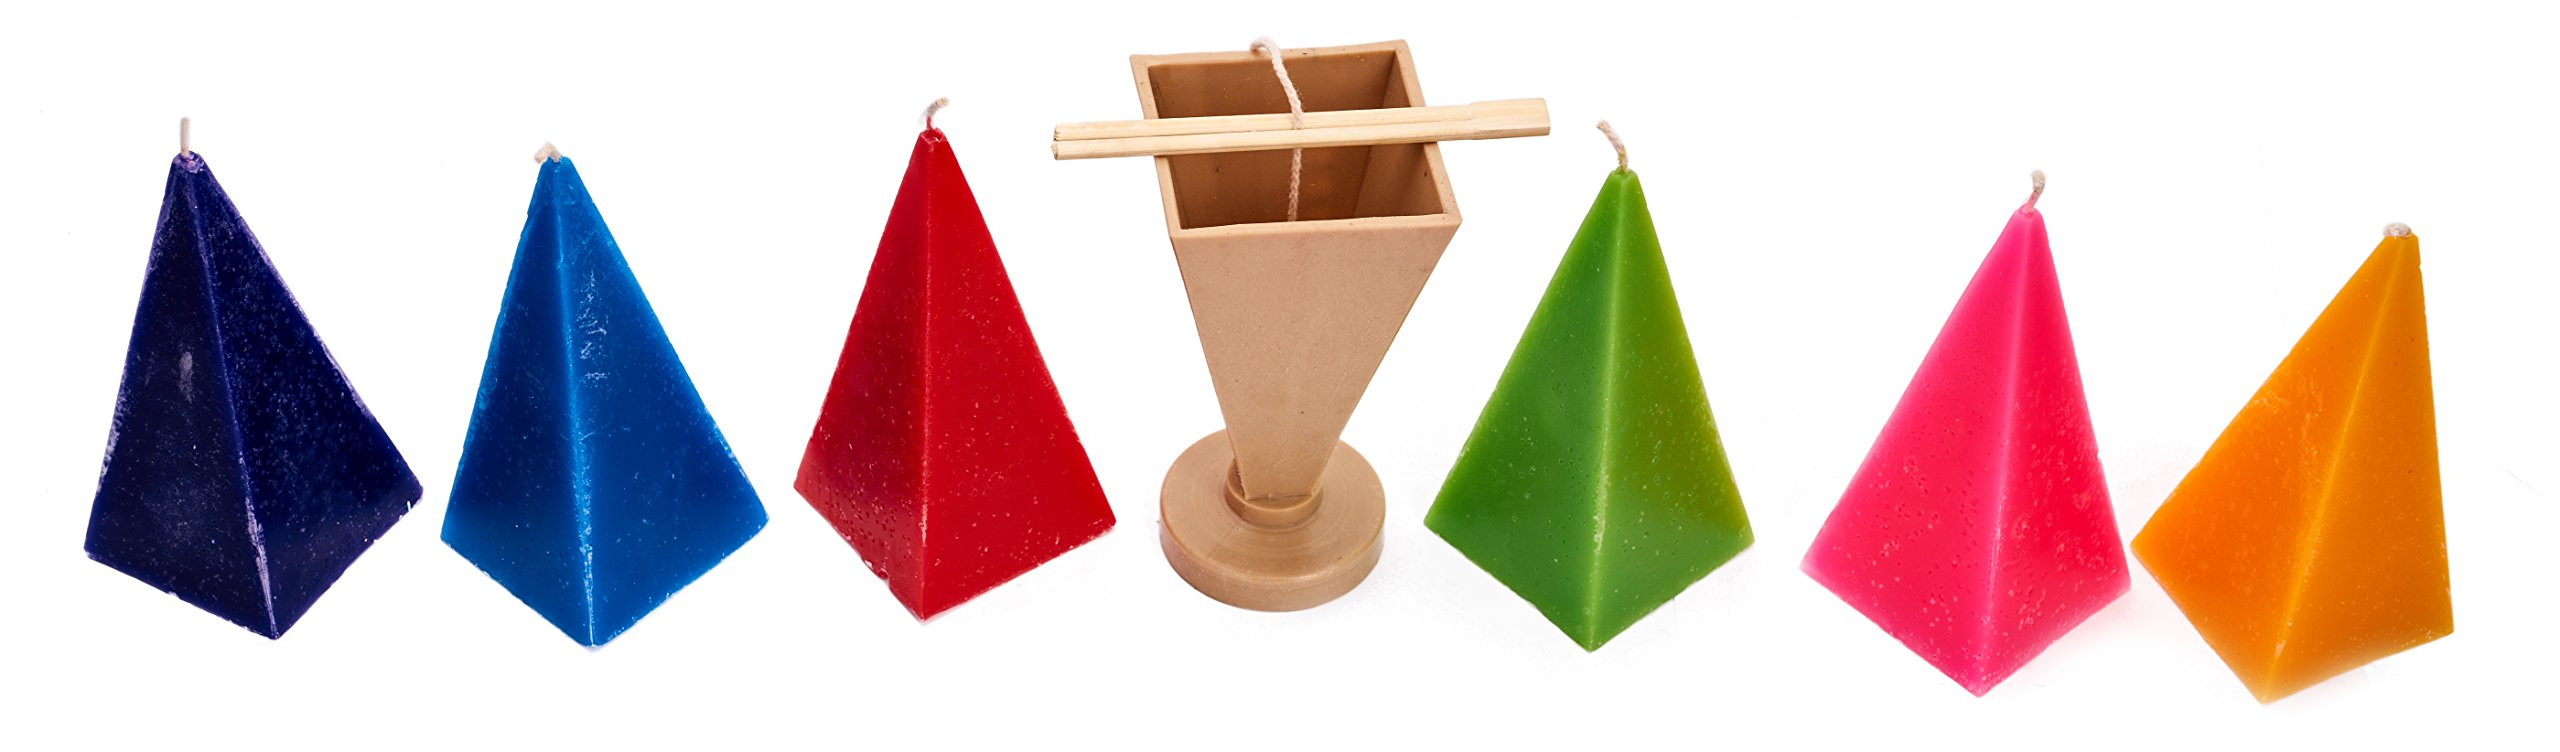 Candle Shop - Pyramid mold - height: 6.3 in, width: 2.7 in - 30 ft. of wick included as a gift - Plastic candle molds for making candles by Candle Shop (Image #3)